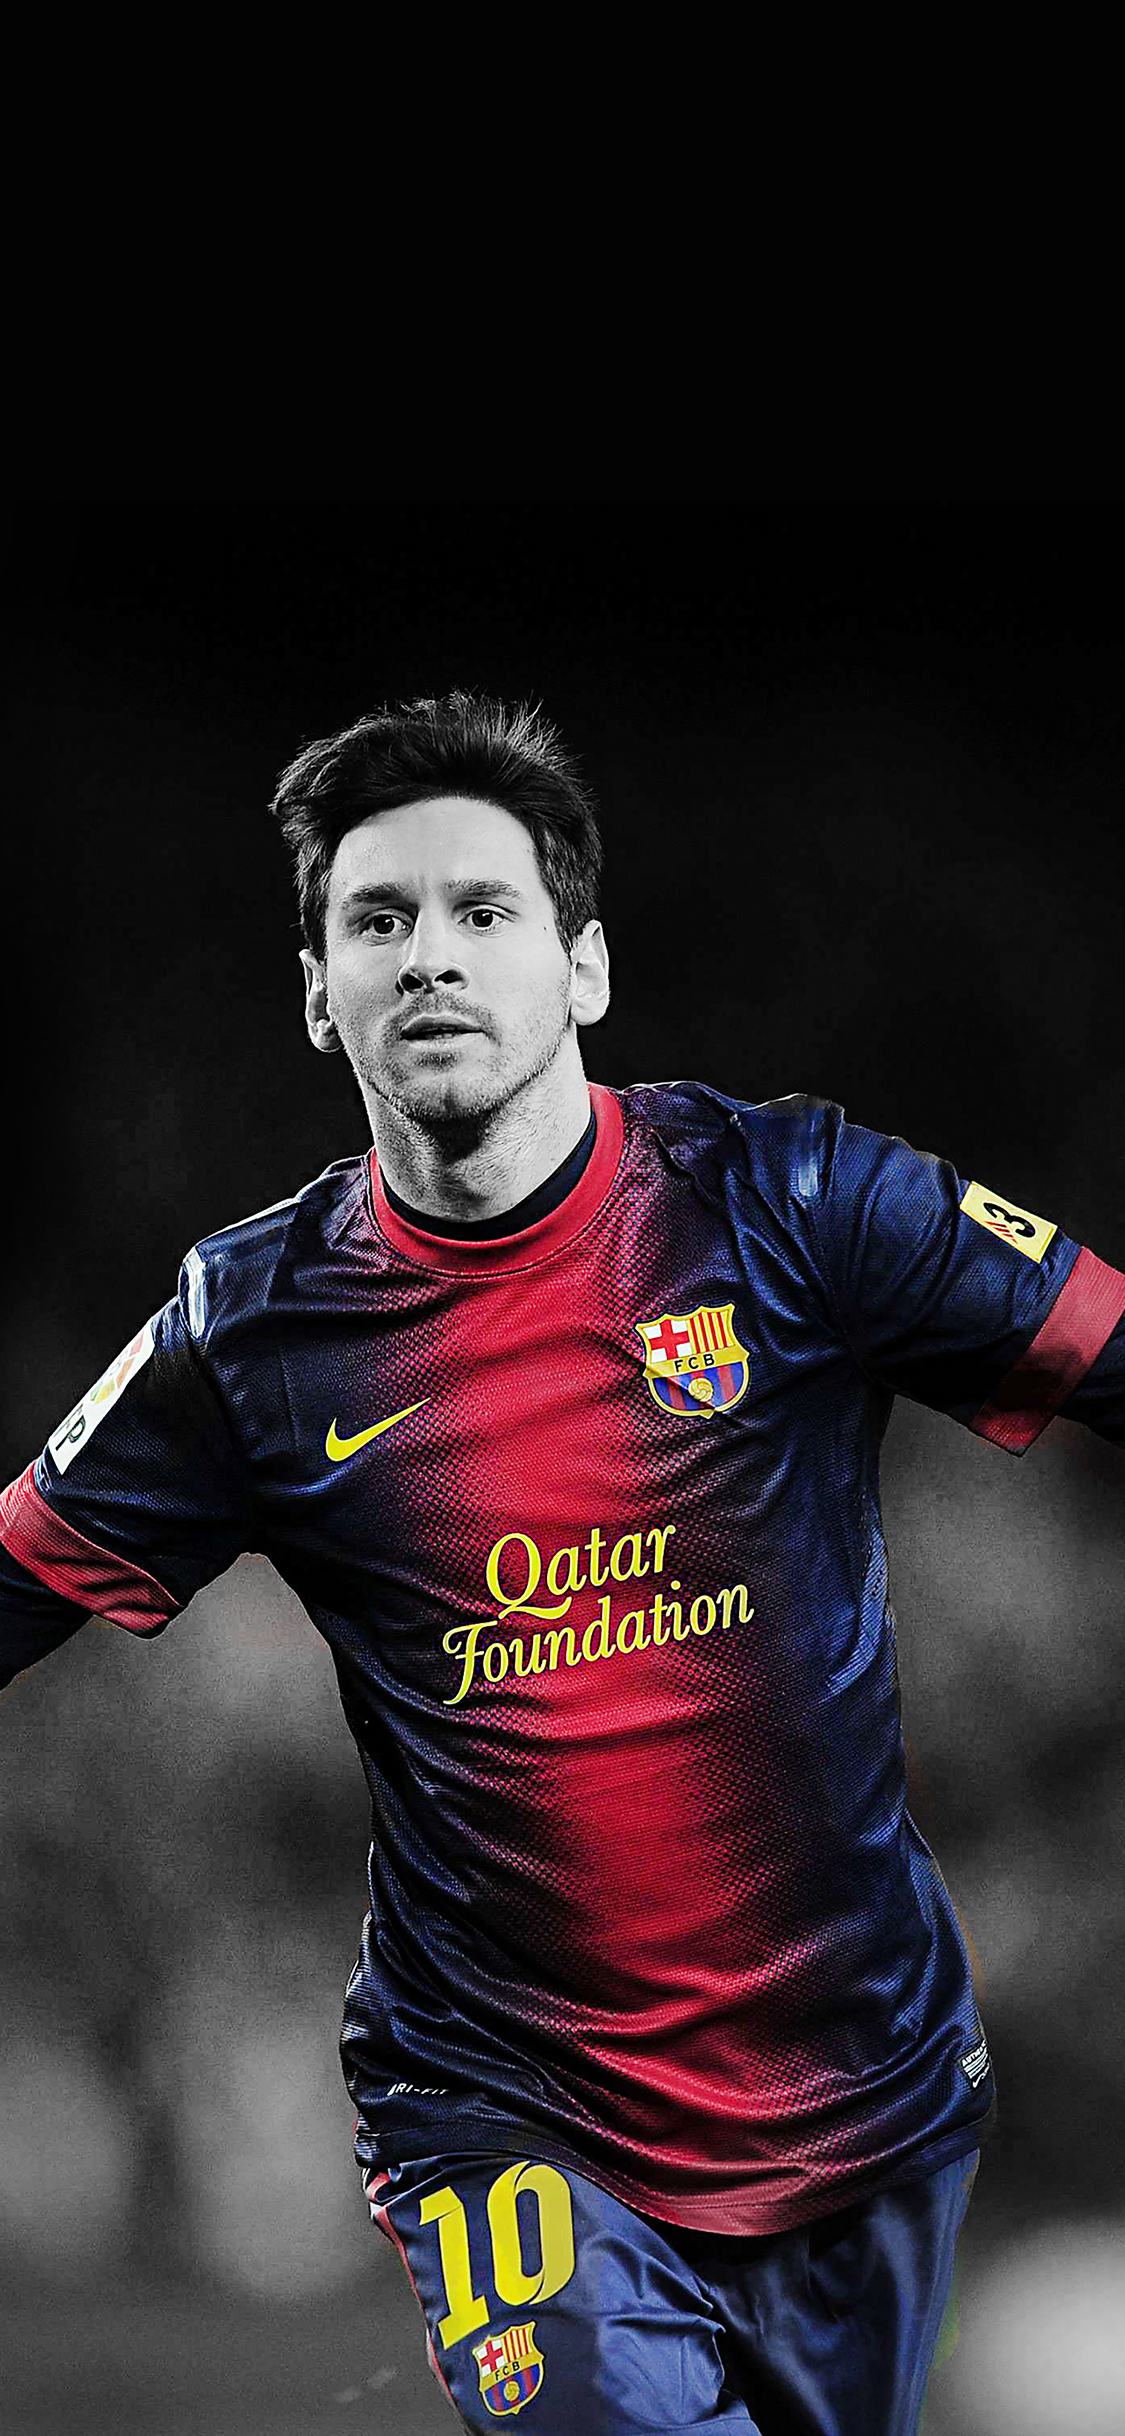 Iphonepapers Hb16 Wallpaper Messi Soccer Barcelona Sports